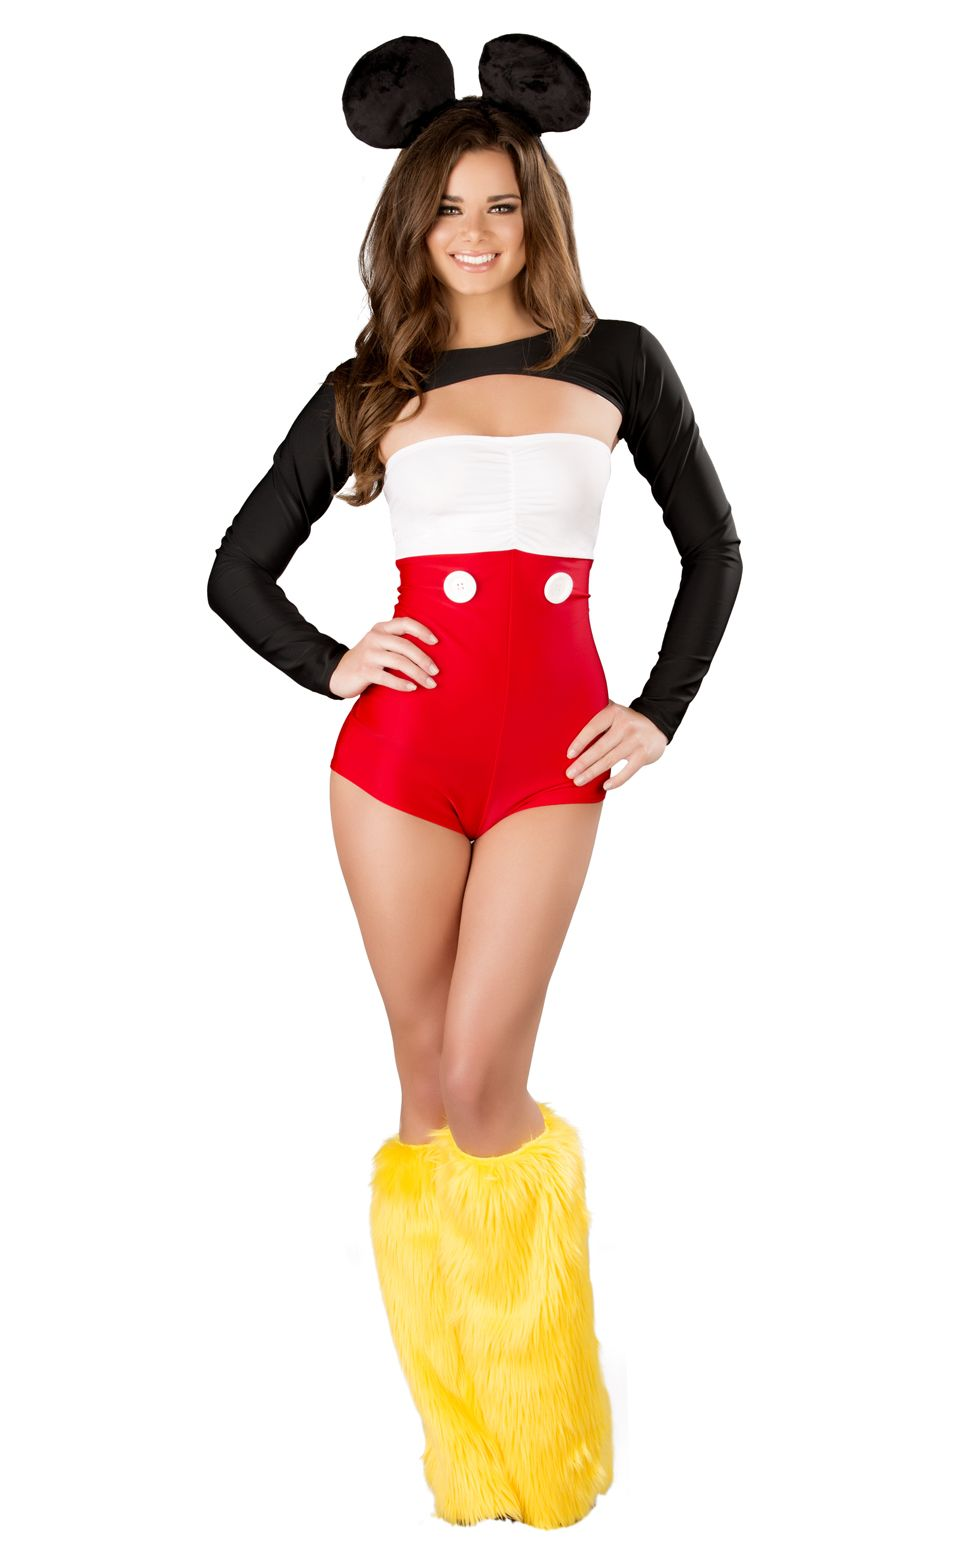 nicky mouse romper costume by j valentine 2013 j valentine costumes mouse